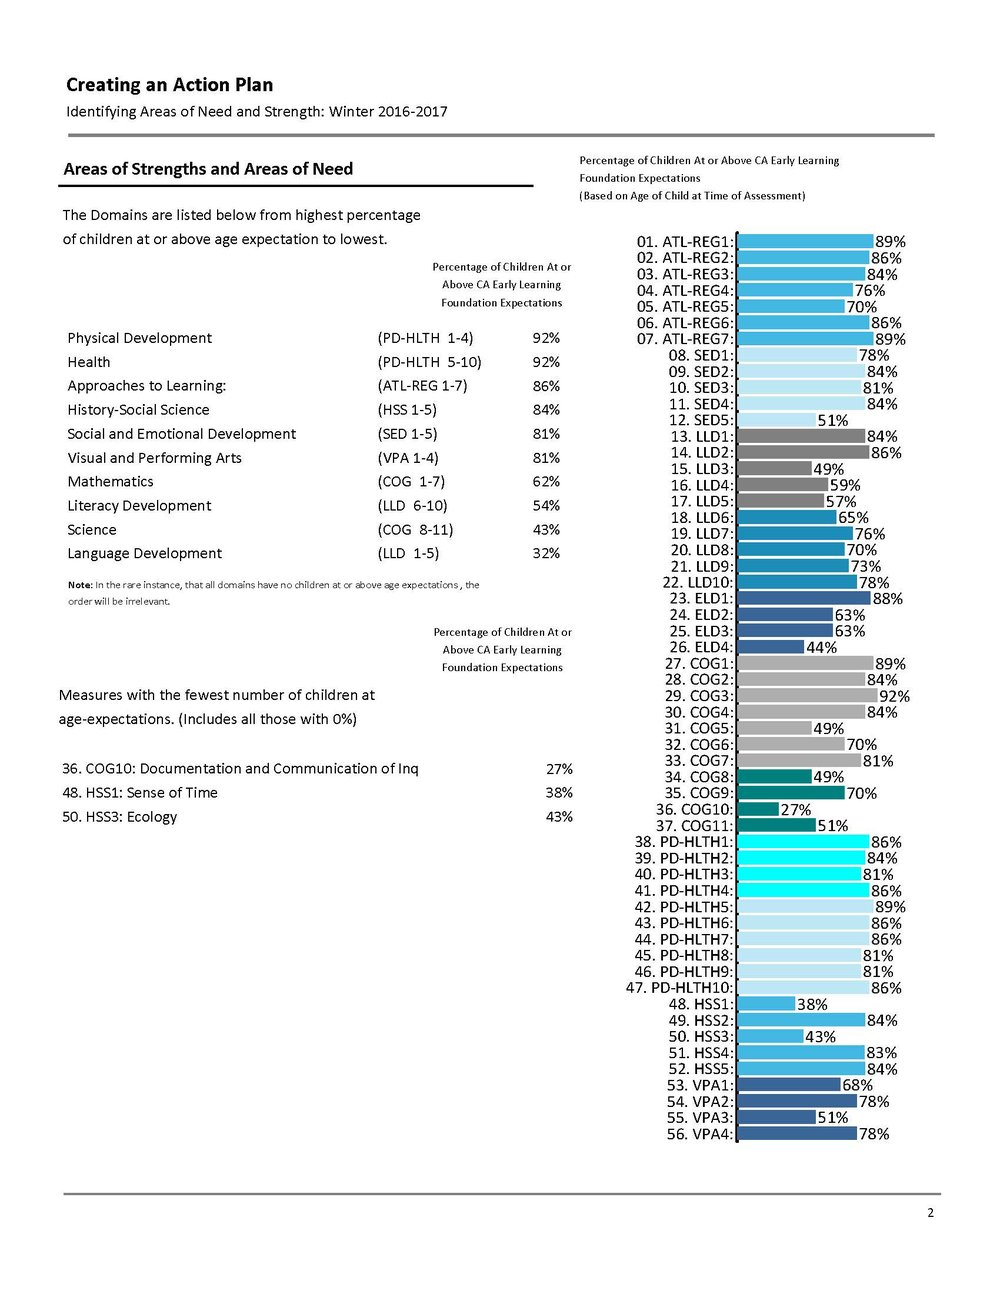 Sample CCR Analytics DRDP 2015 Class Report_Foundations__Page_02.jpg